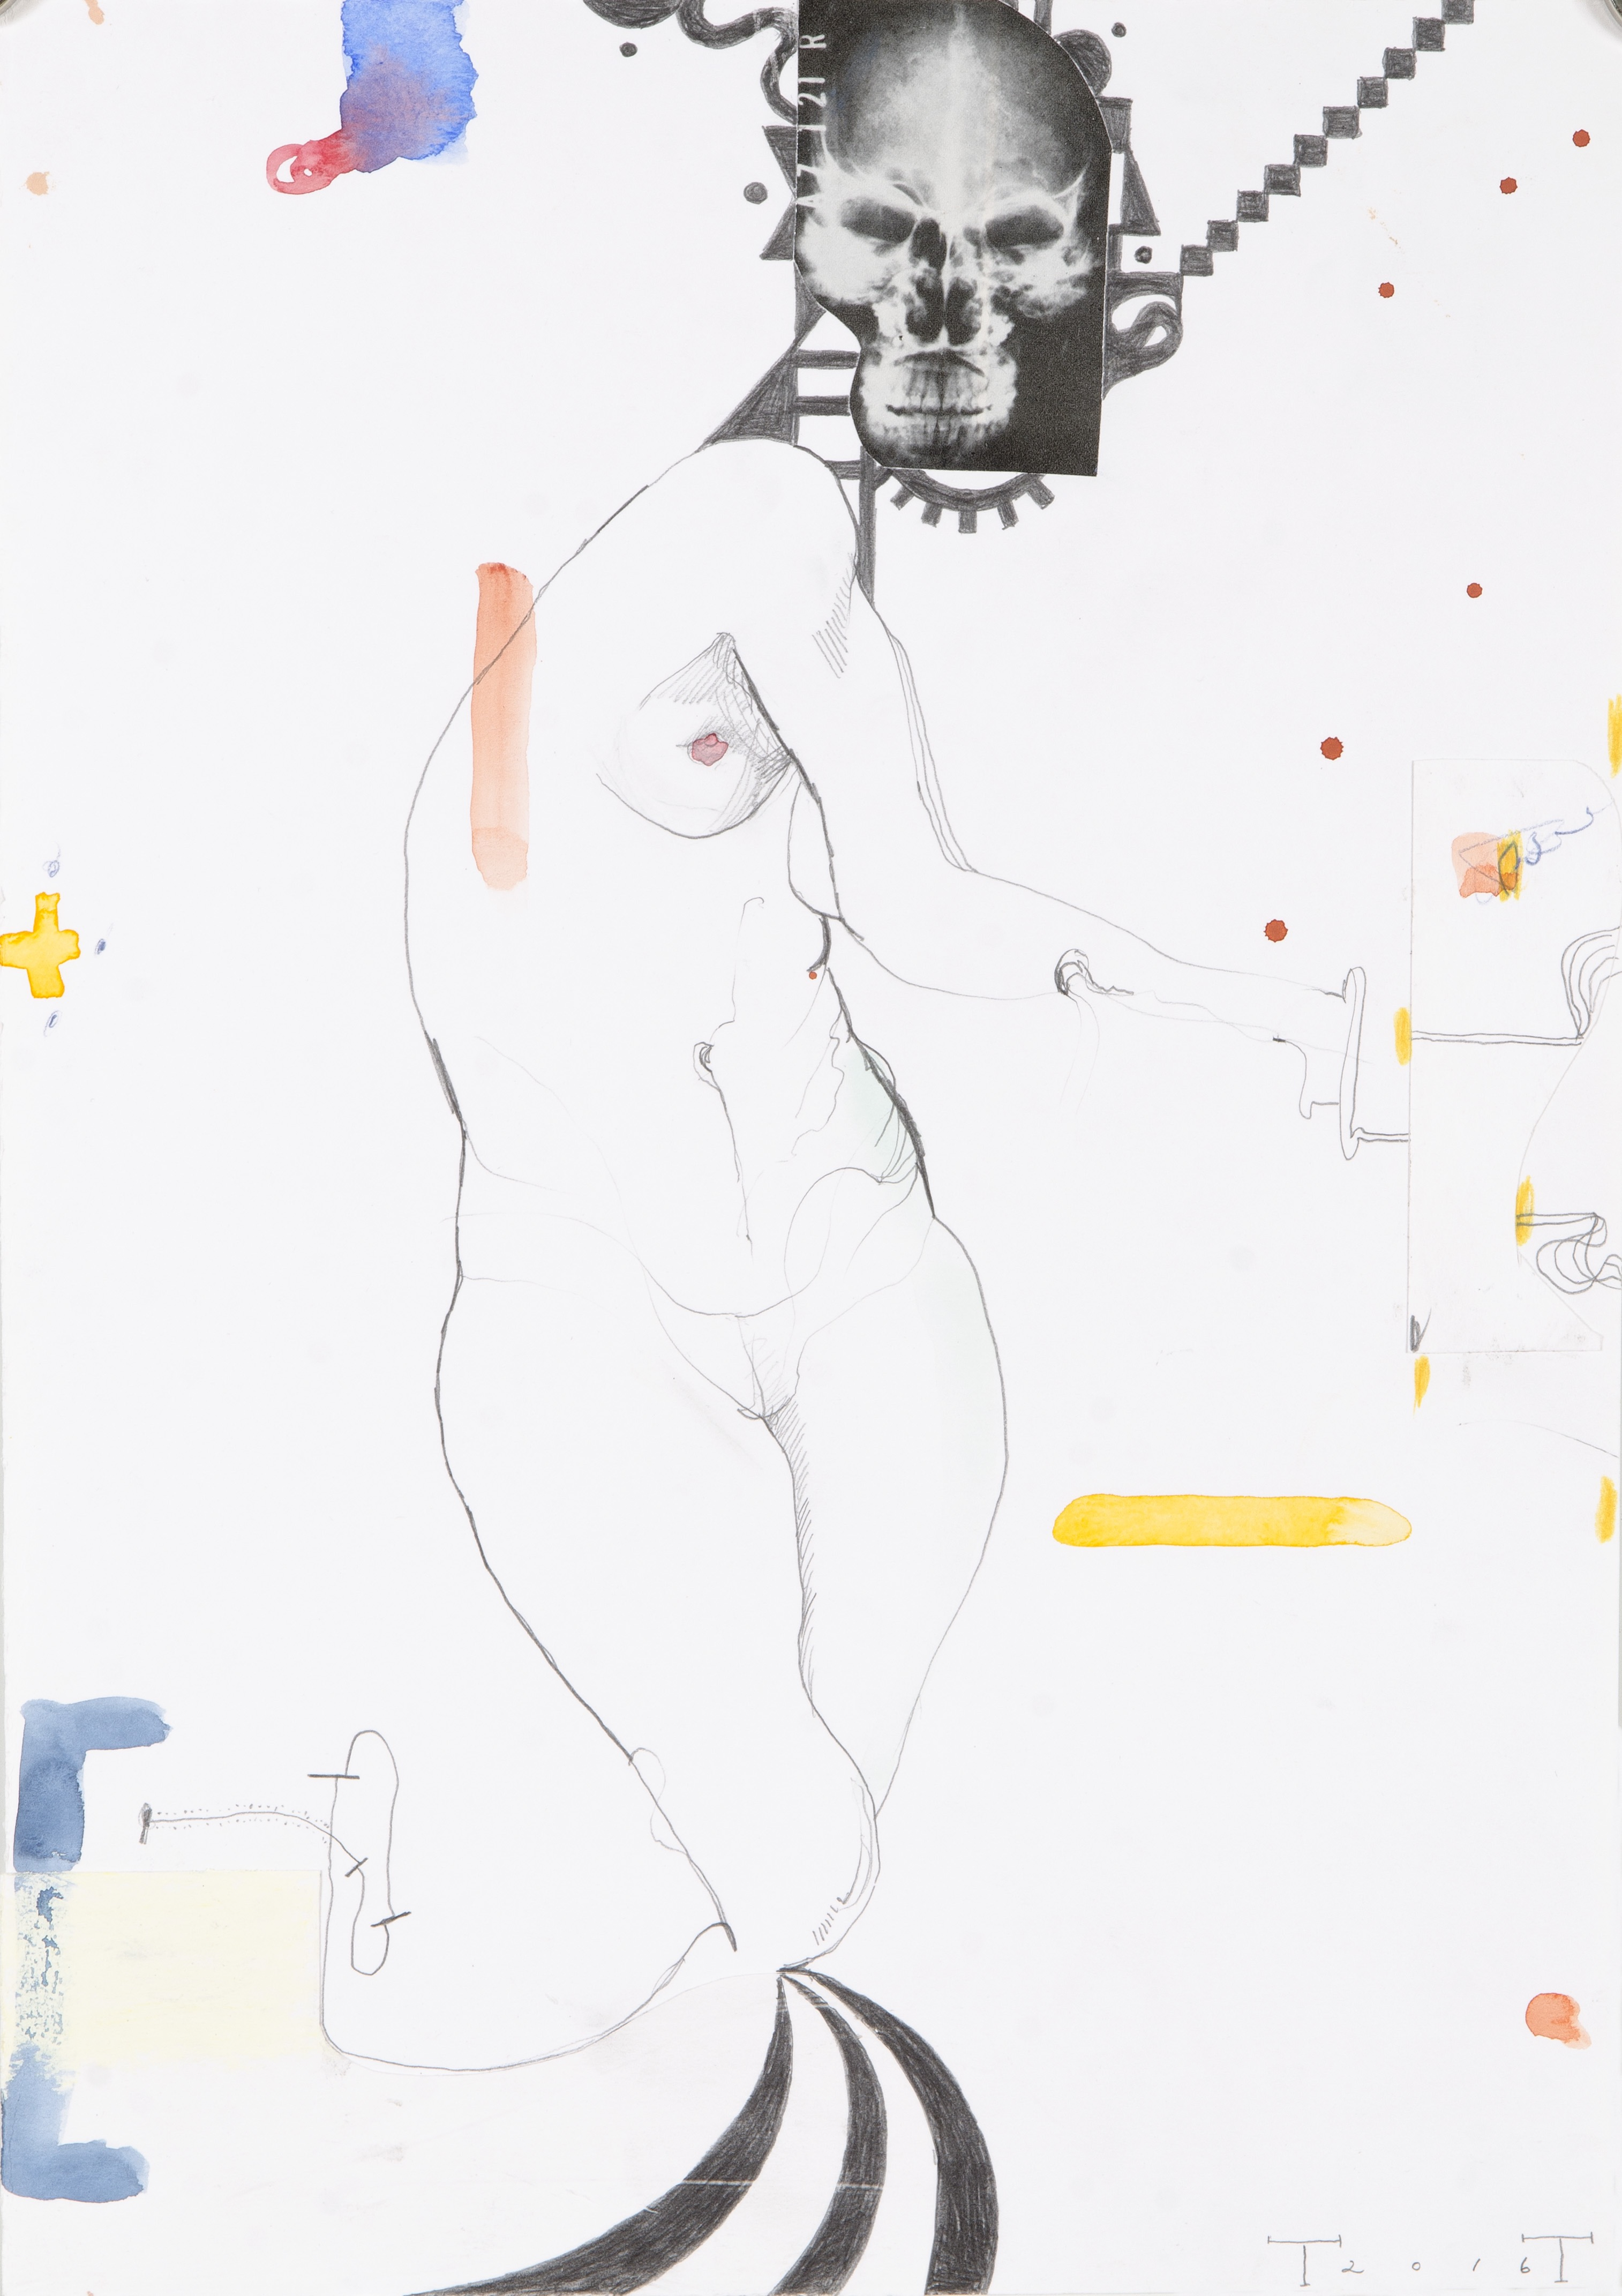 Death and the Maiden, mixed media on paper, 42 X 29.5 cm, 2016